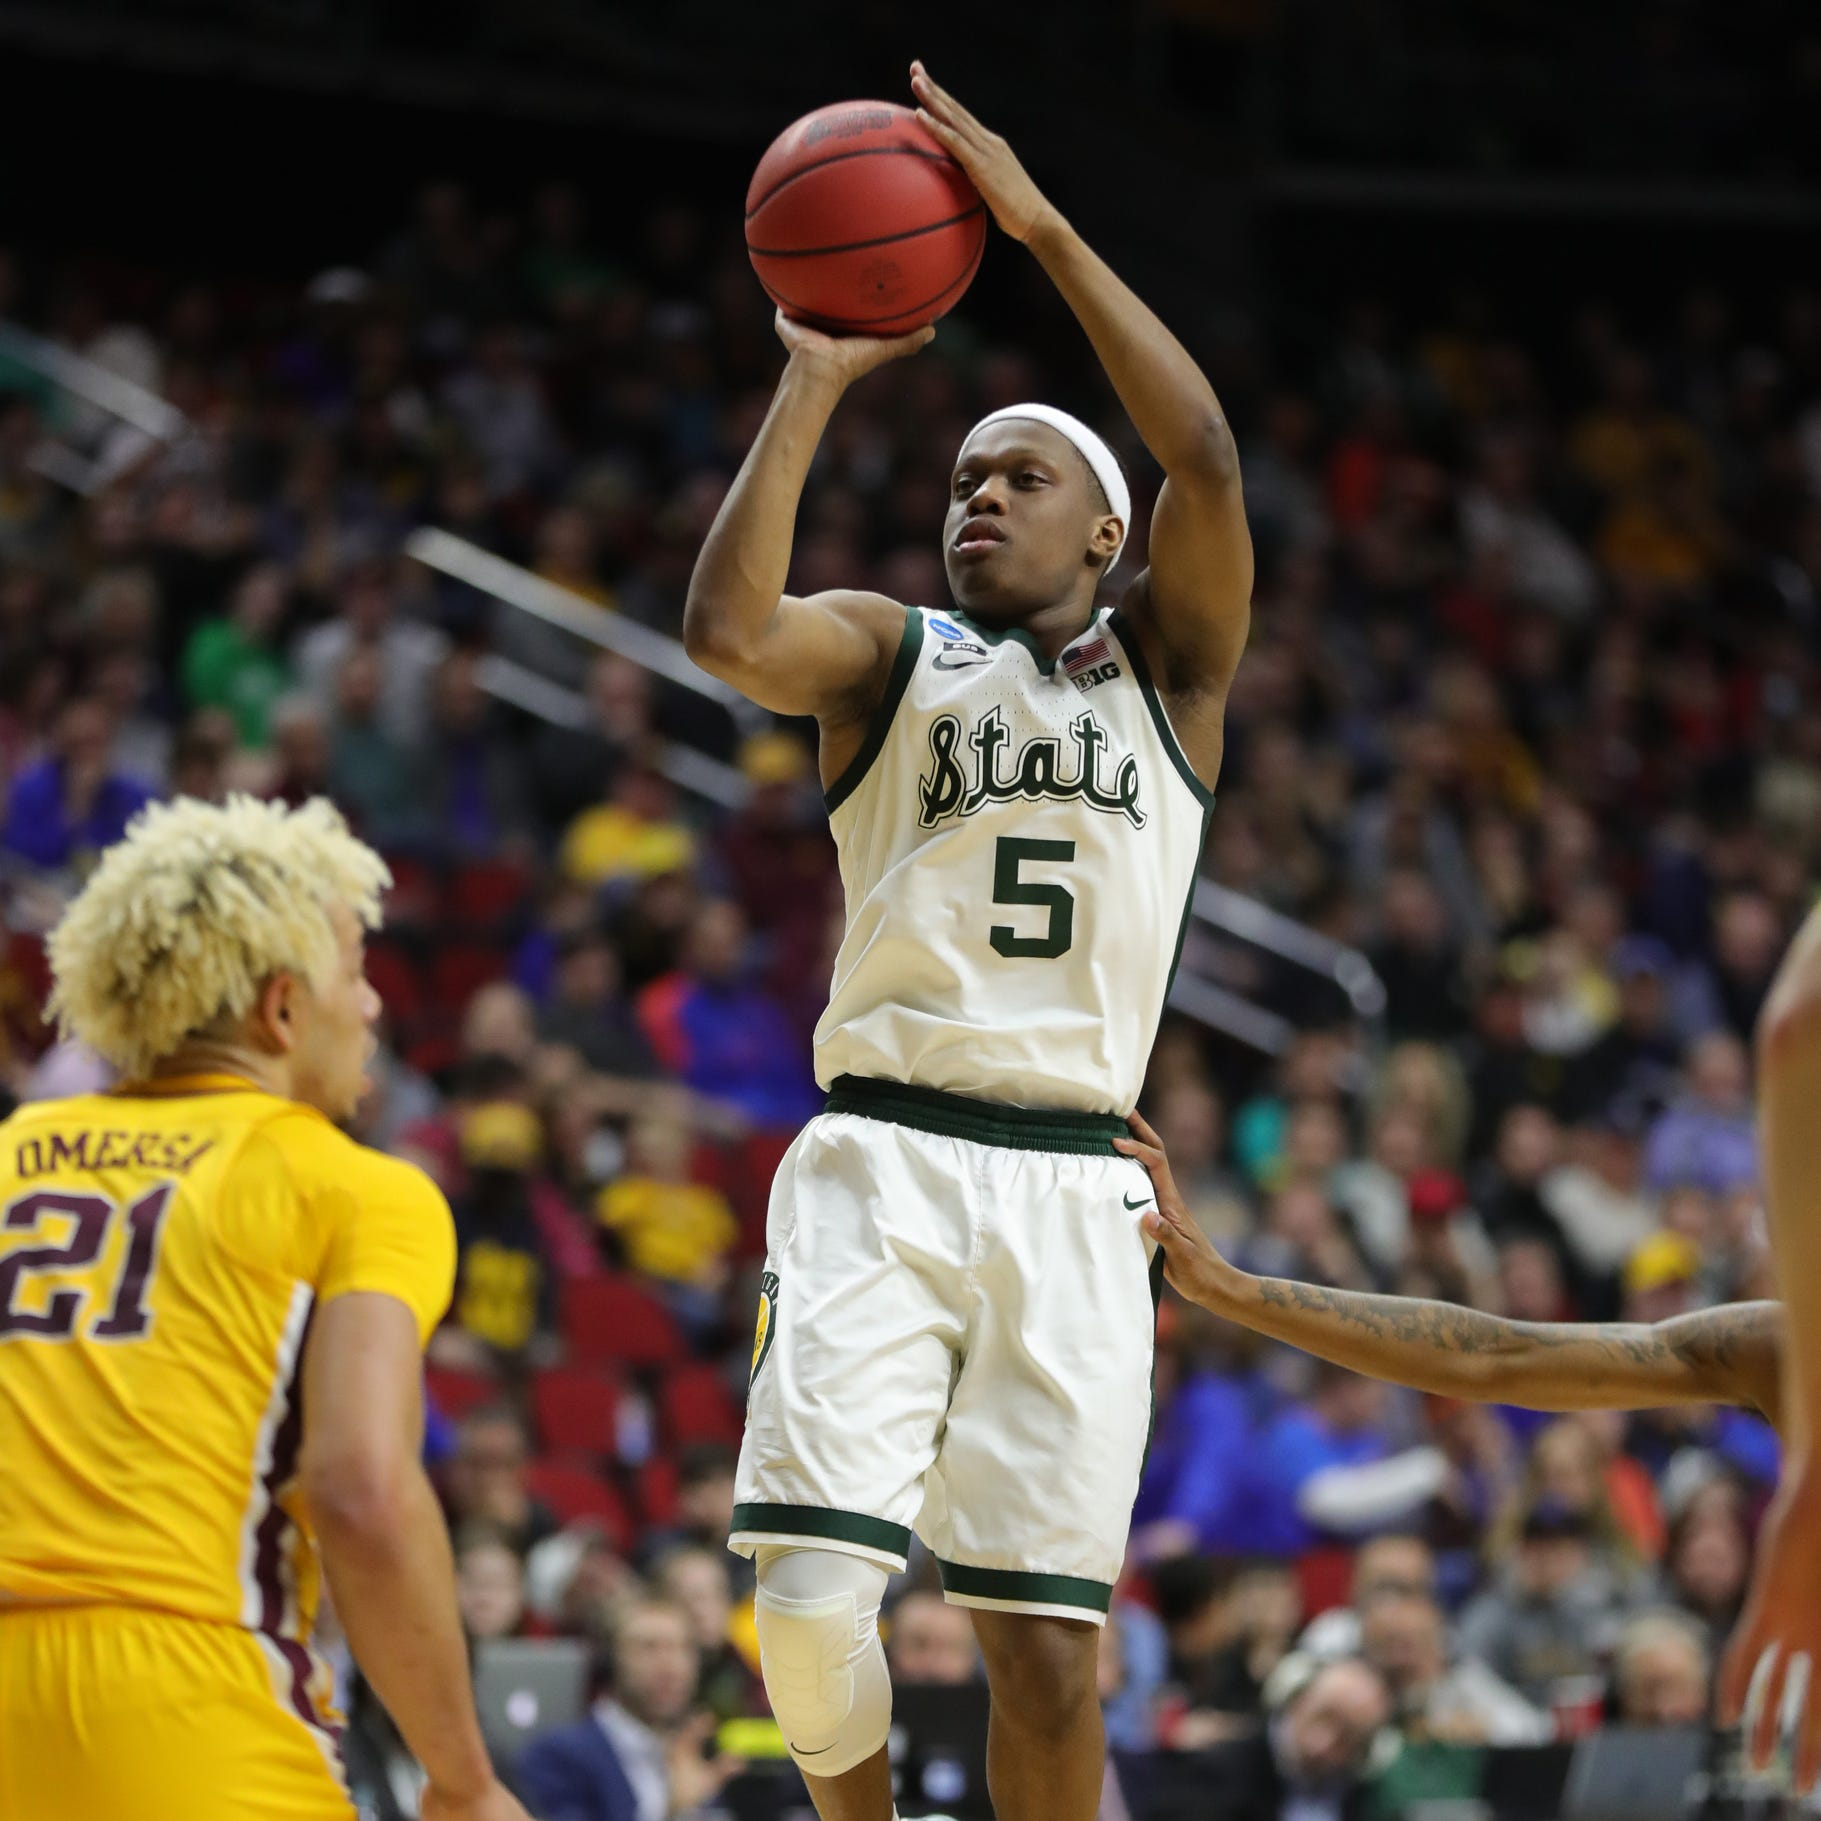 Cassius Winston took over when Michigan State needed him most, to get to Sweet 16